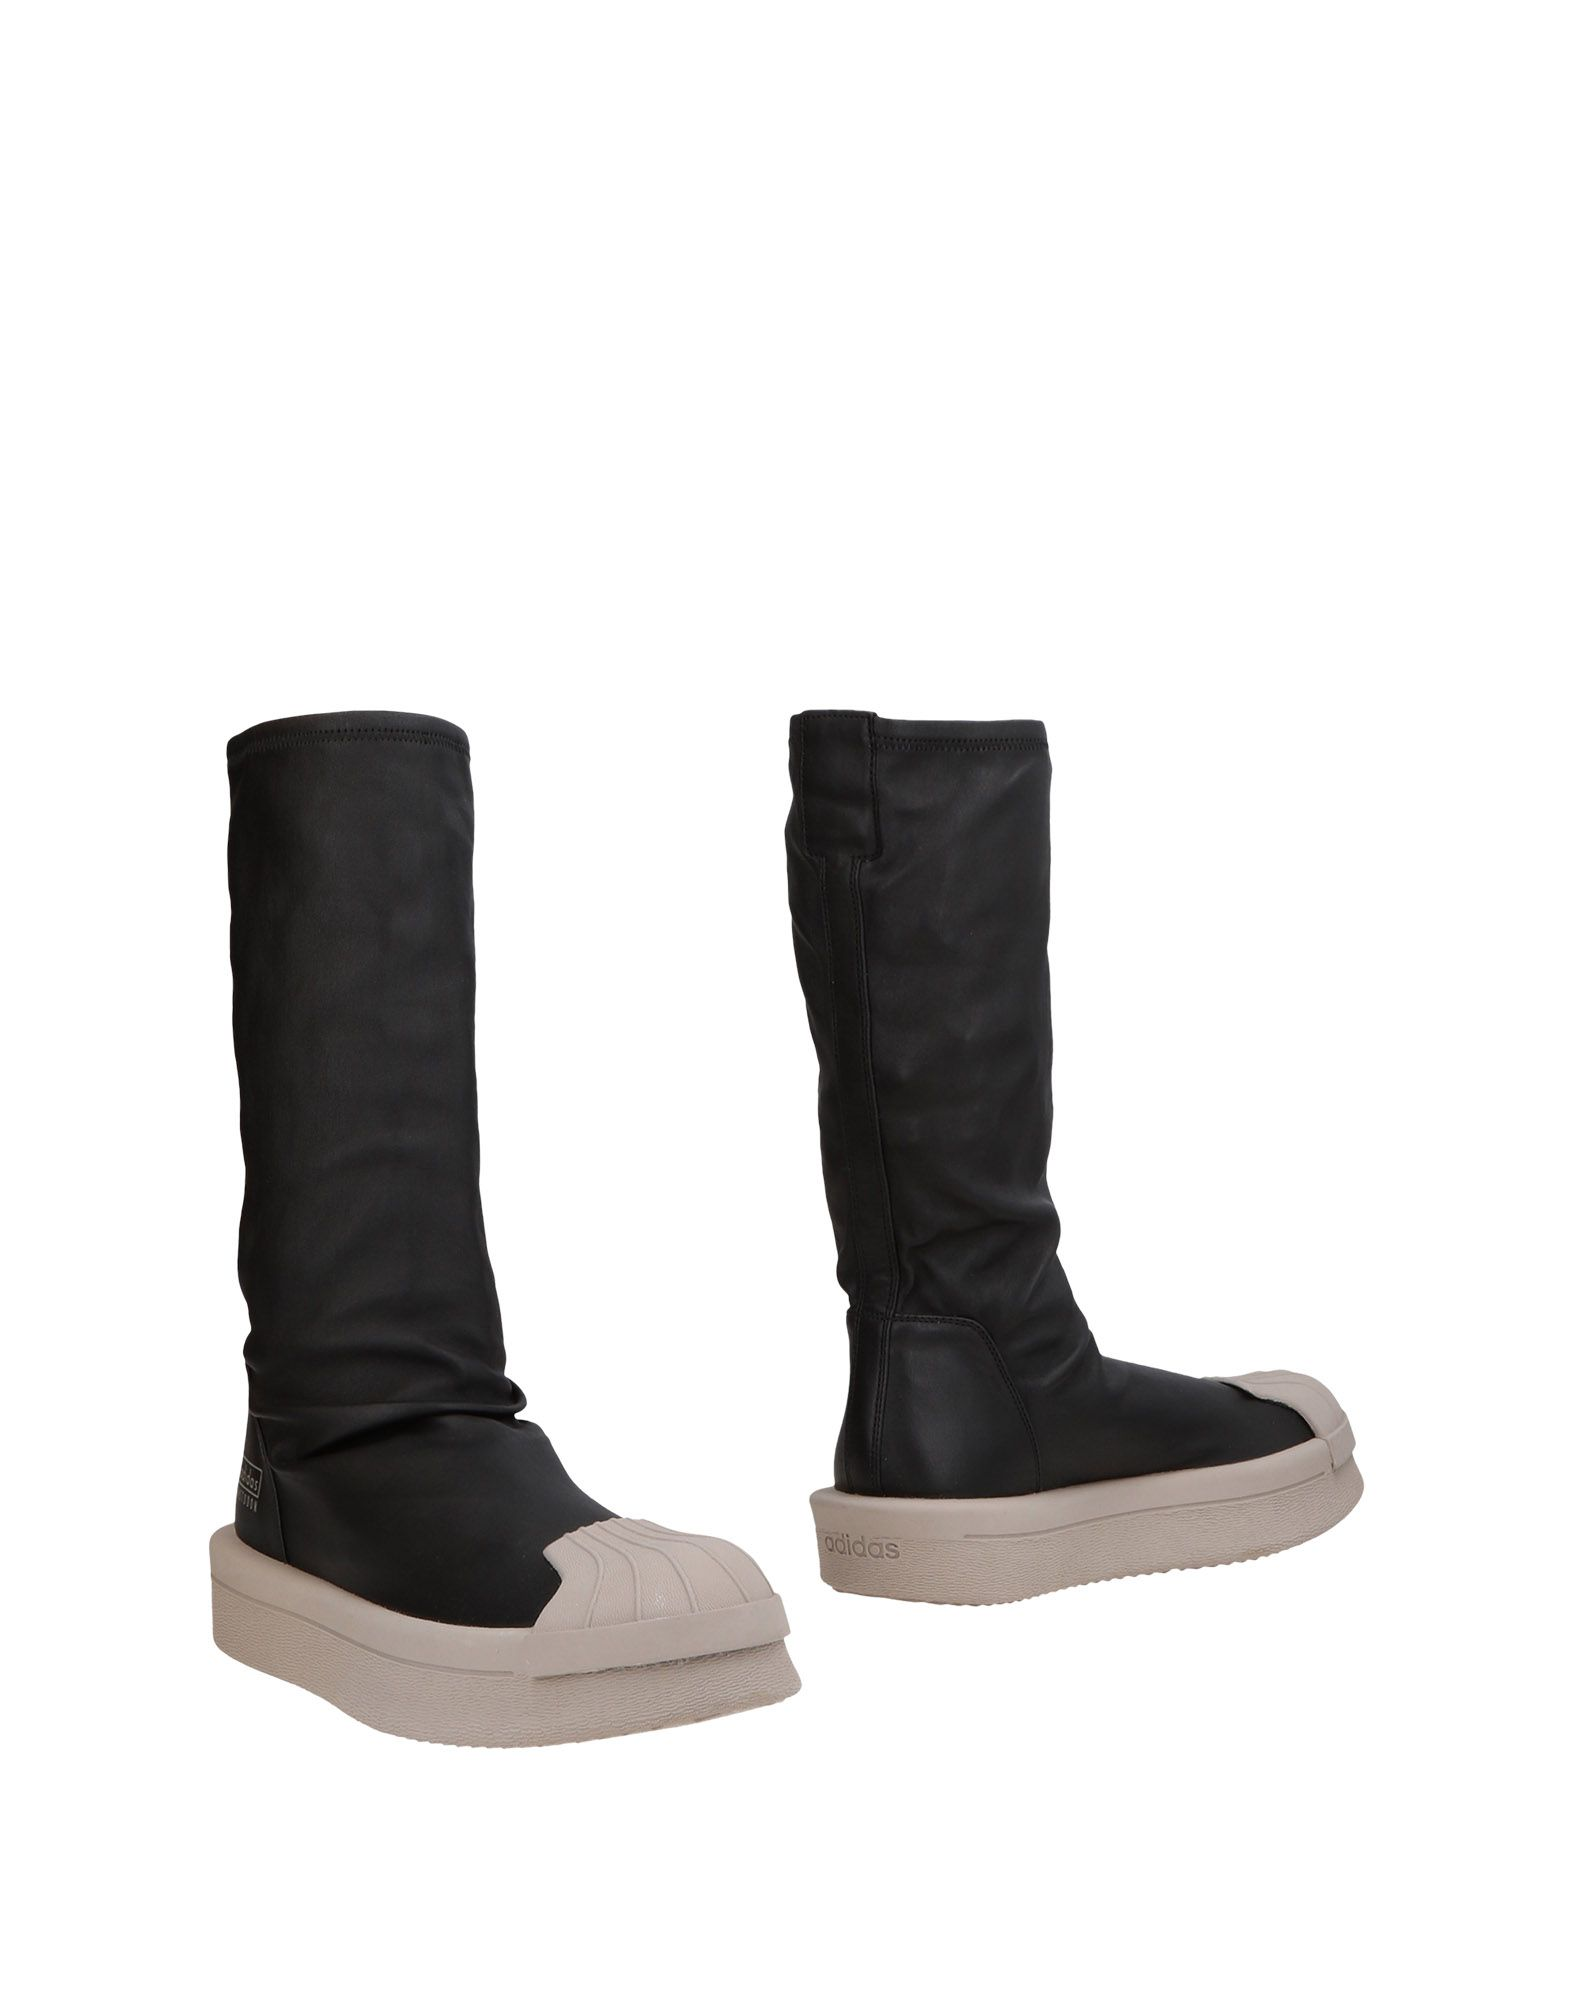 ADIDAS BY RICK OWENS Boots in Black